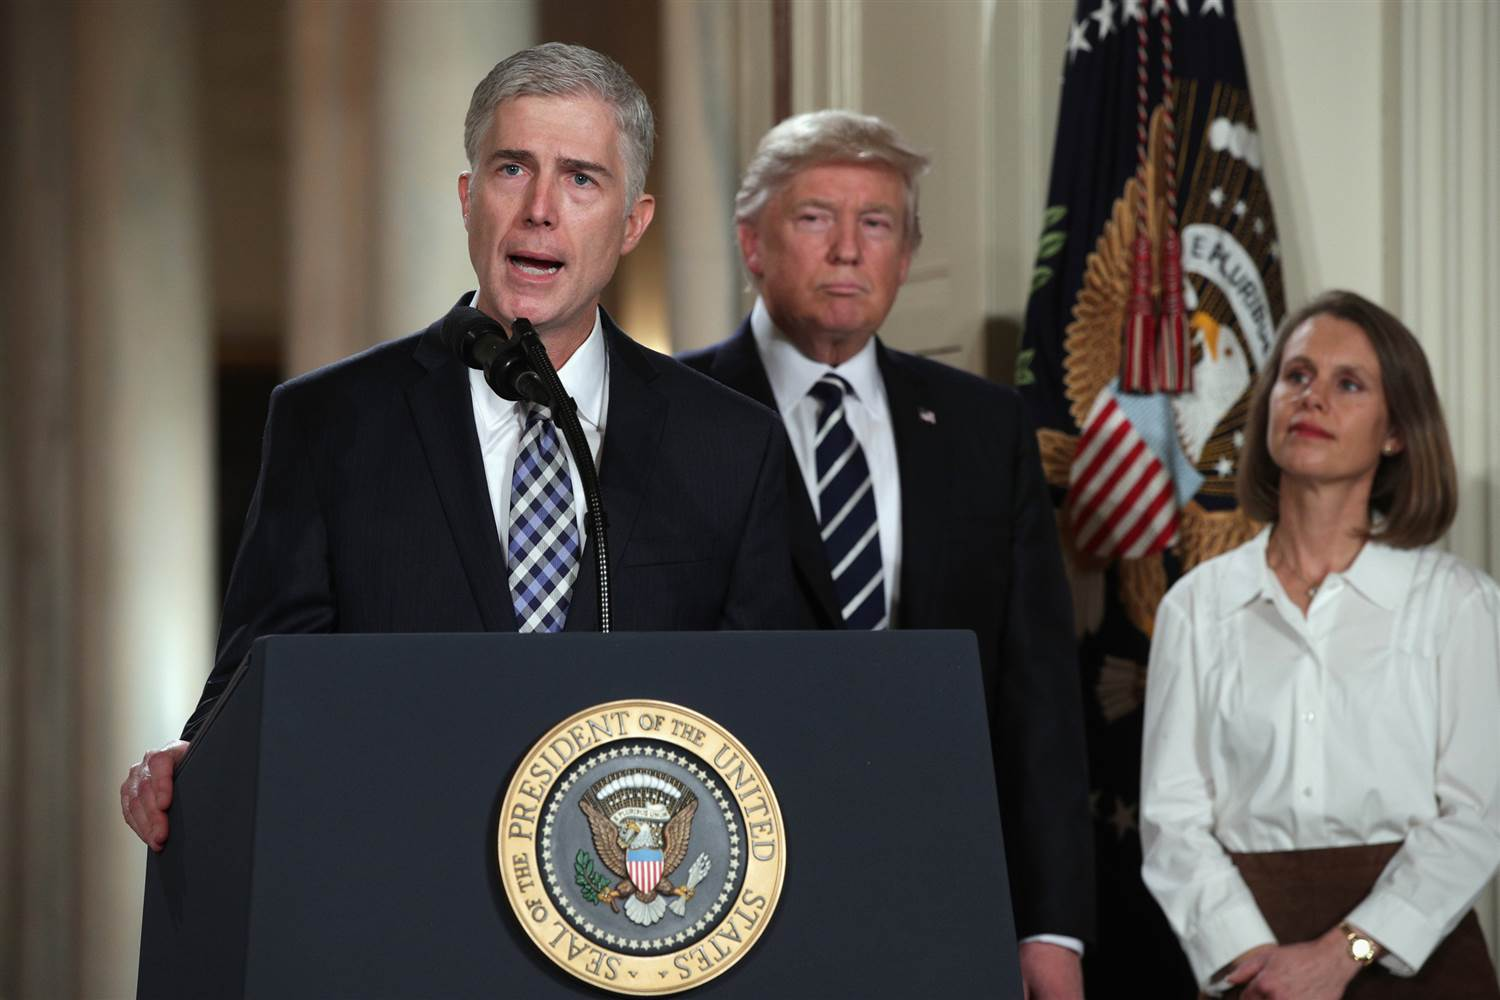 Judge Neil Gorsuch delivers remarks after being nominated by President Donald Trump to the Supreme Court with his wife Marie Louise Gorshuch during a ceremony in the East Room of the White House on Jan. 31, 2017. (Alex Wong / Getty Images)